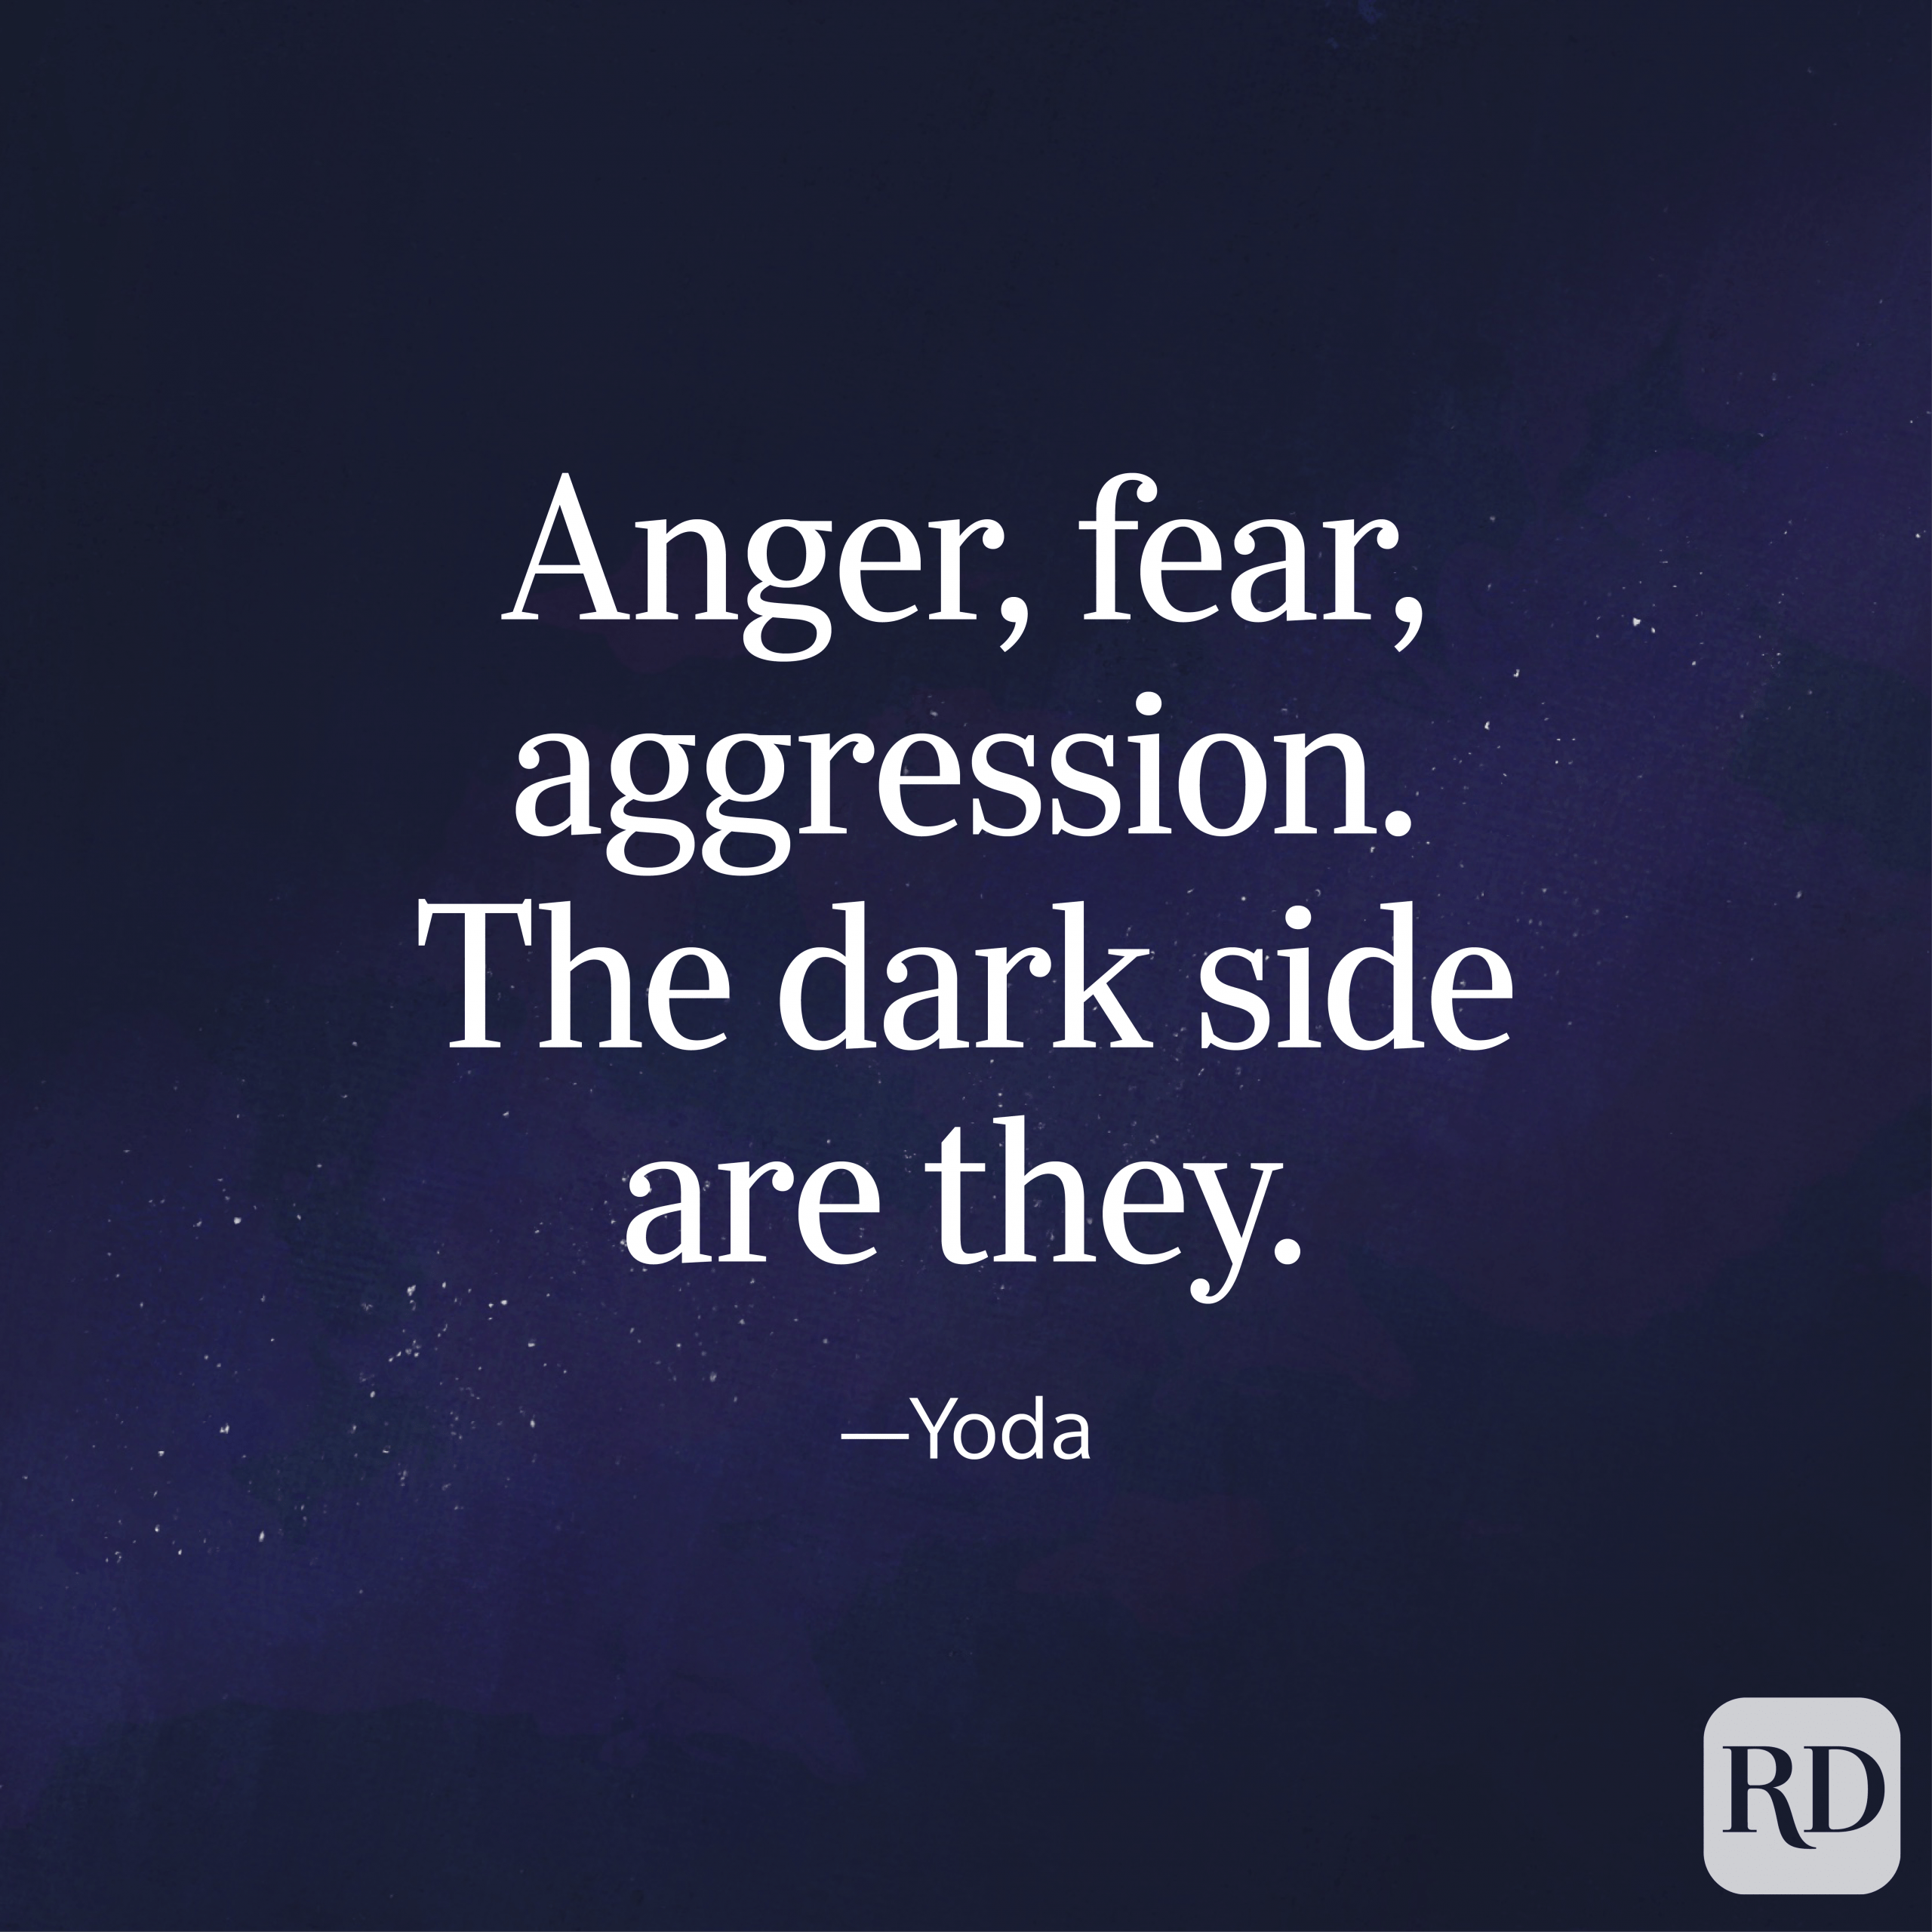 """Anger, fear, aggression. The dark side are they."" Yoda quote on a galaxy background"